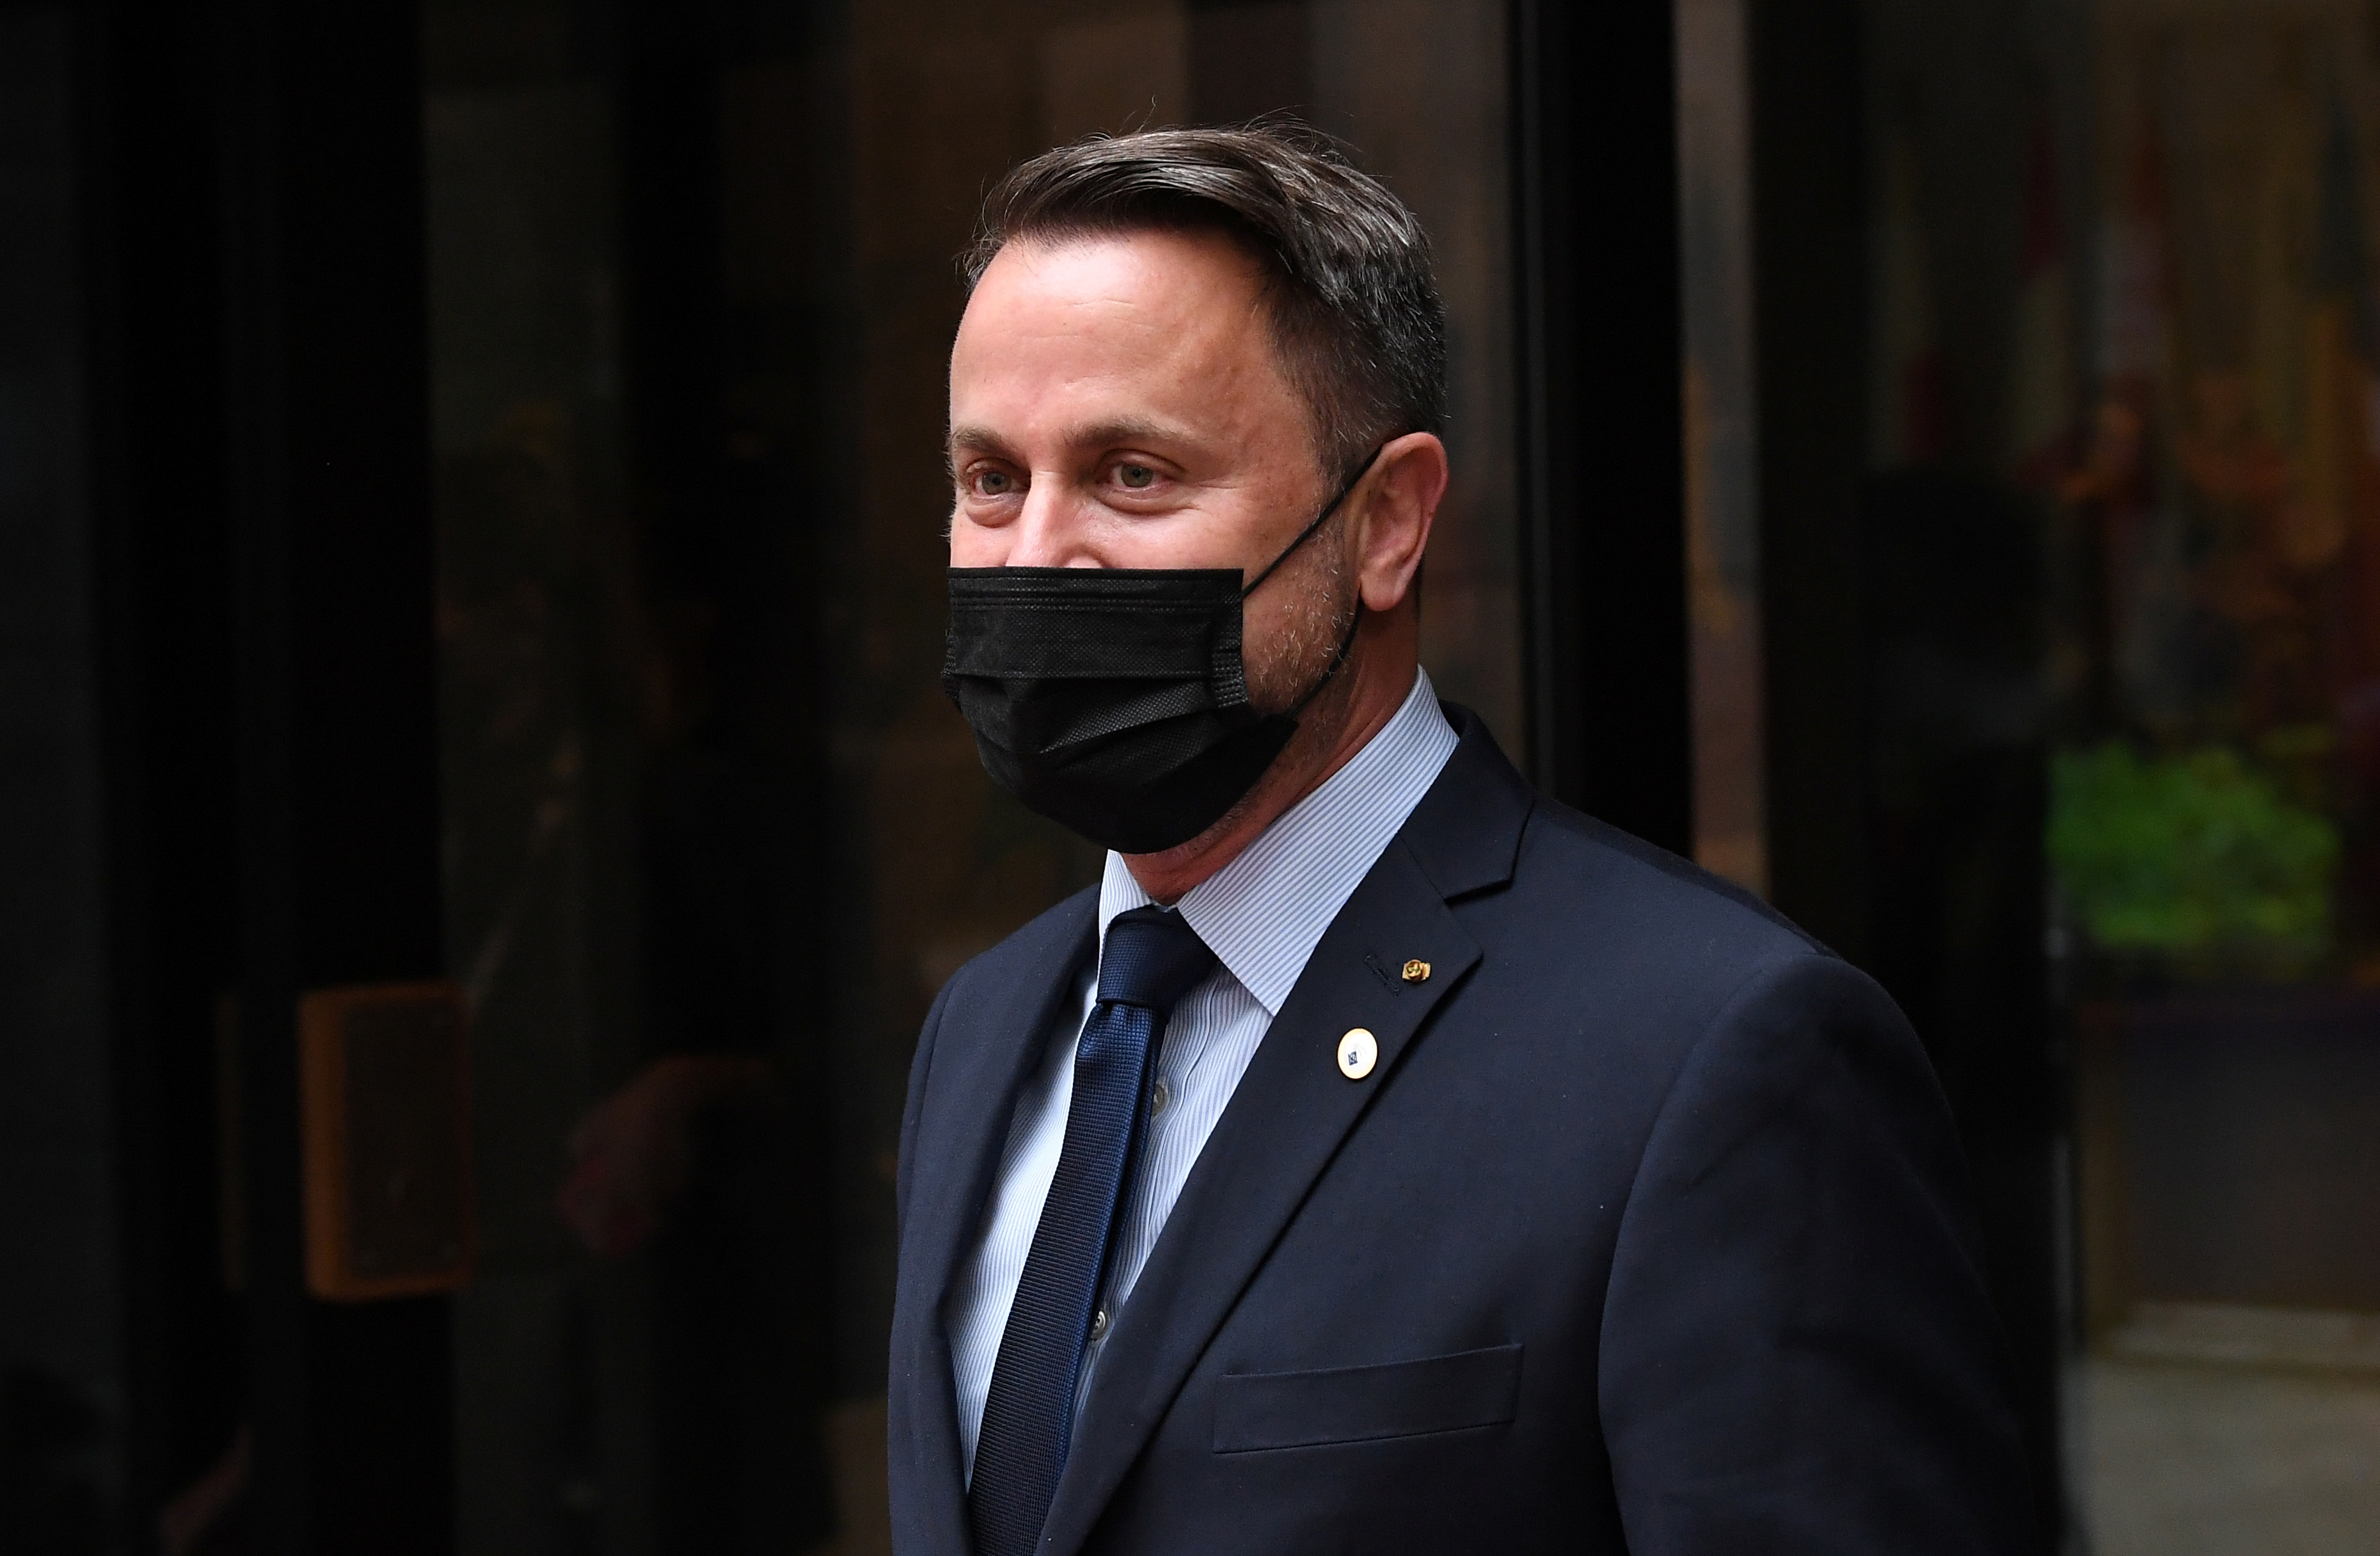 Luxembourg's Prime Minister Xavier Bettel departs after attending the second day of a EU summit at the European Council building in Brussels, Belgium June 25, 2021. John Thys/Pool via REUTERS